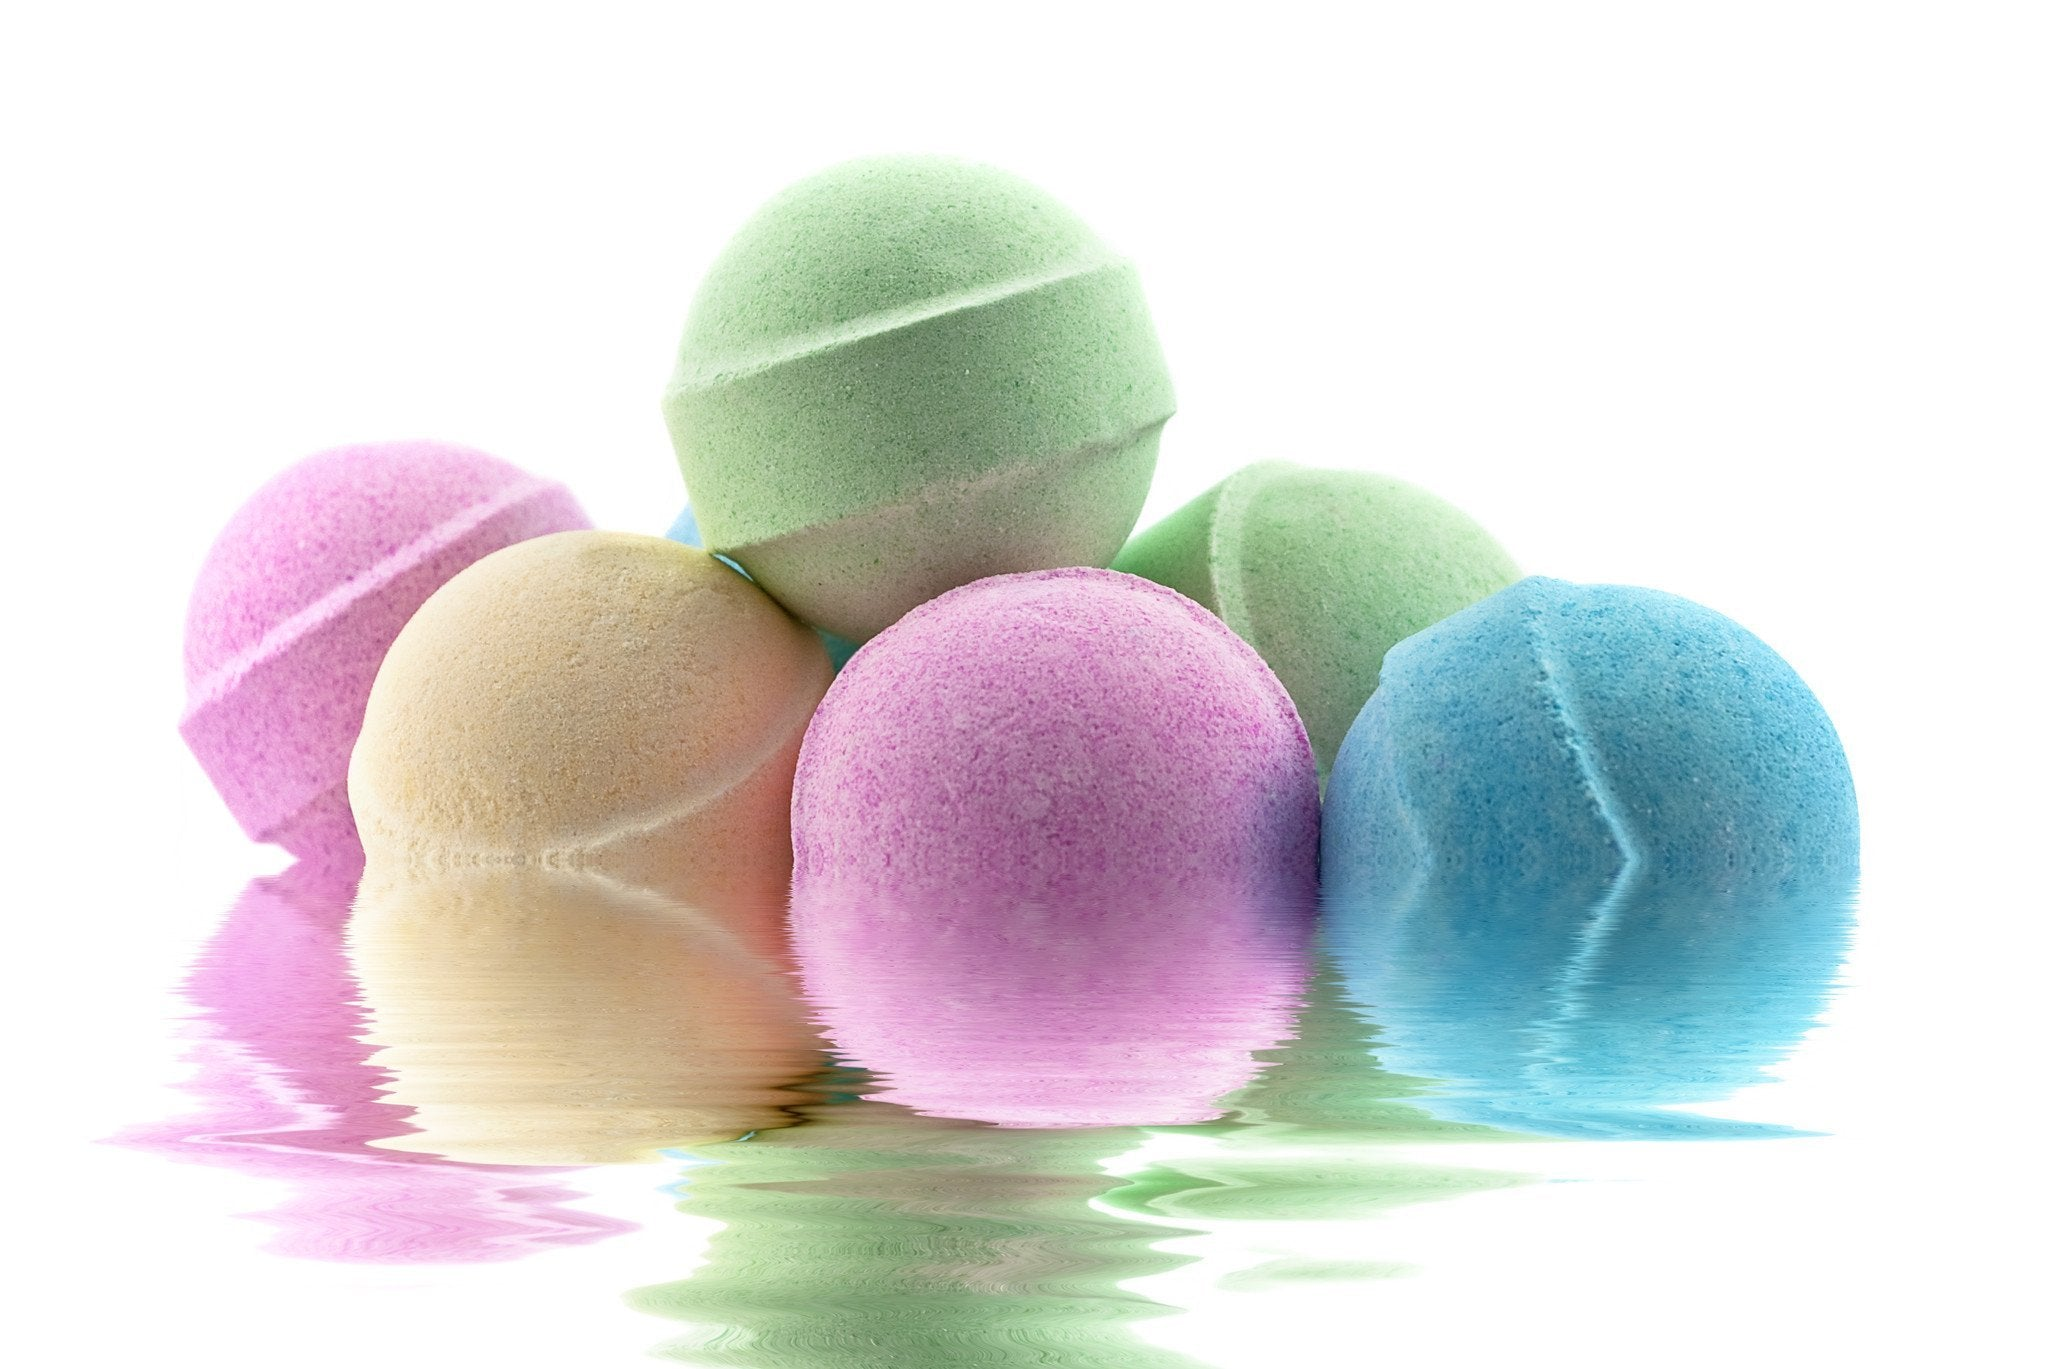 8-Pack PB&K Luxury Bath Bomb Subscription